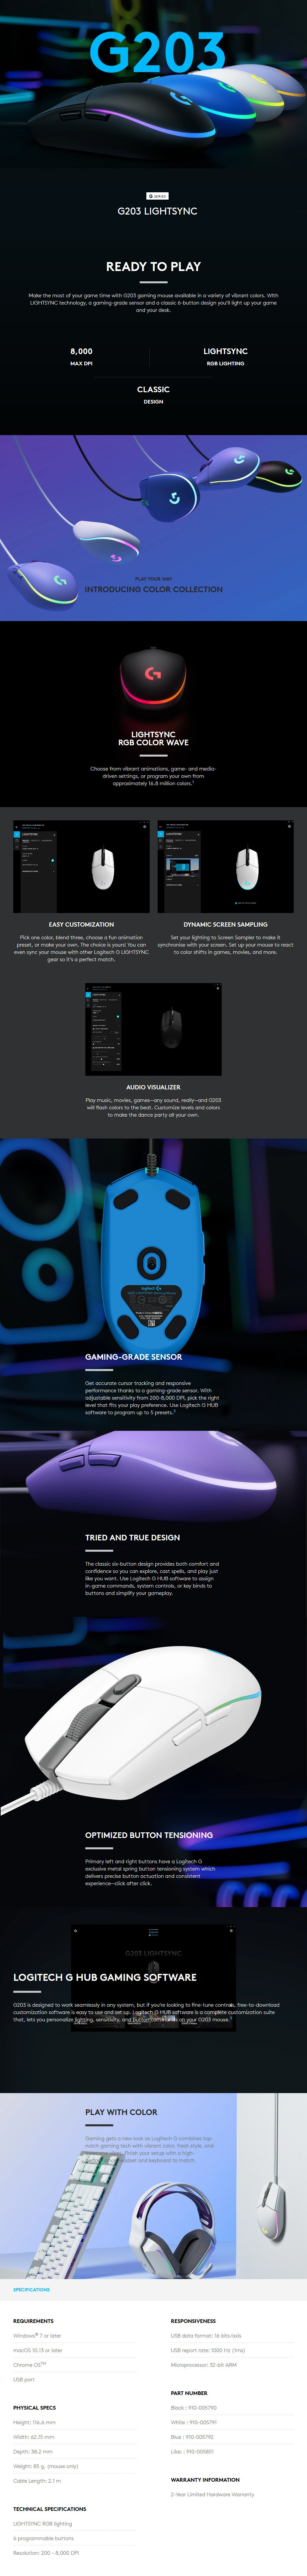 Logitech G203 LIGHTSYNC Gaming Mouse - Blue - Overview 1